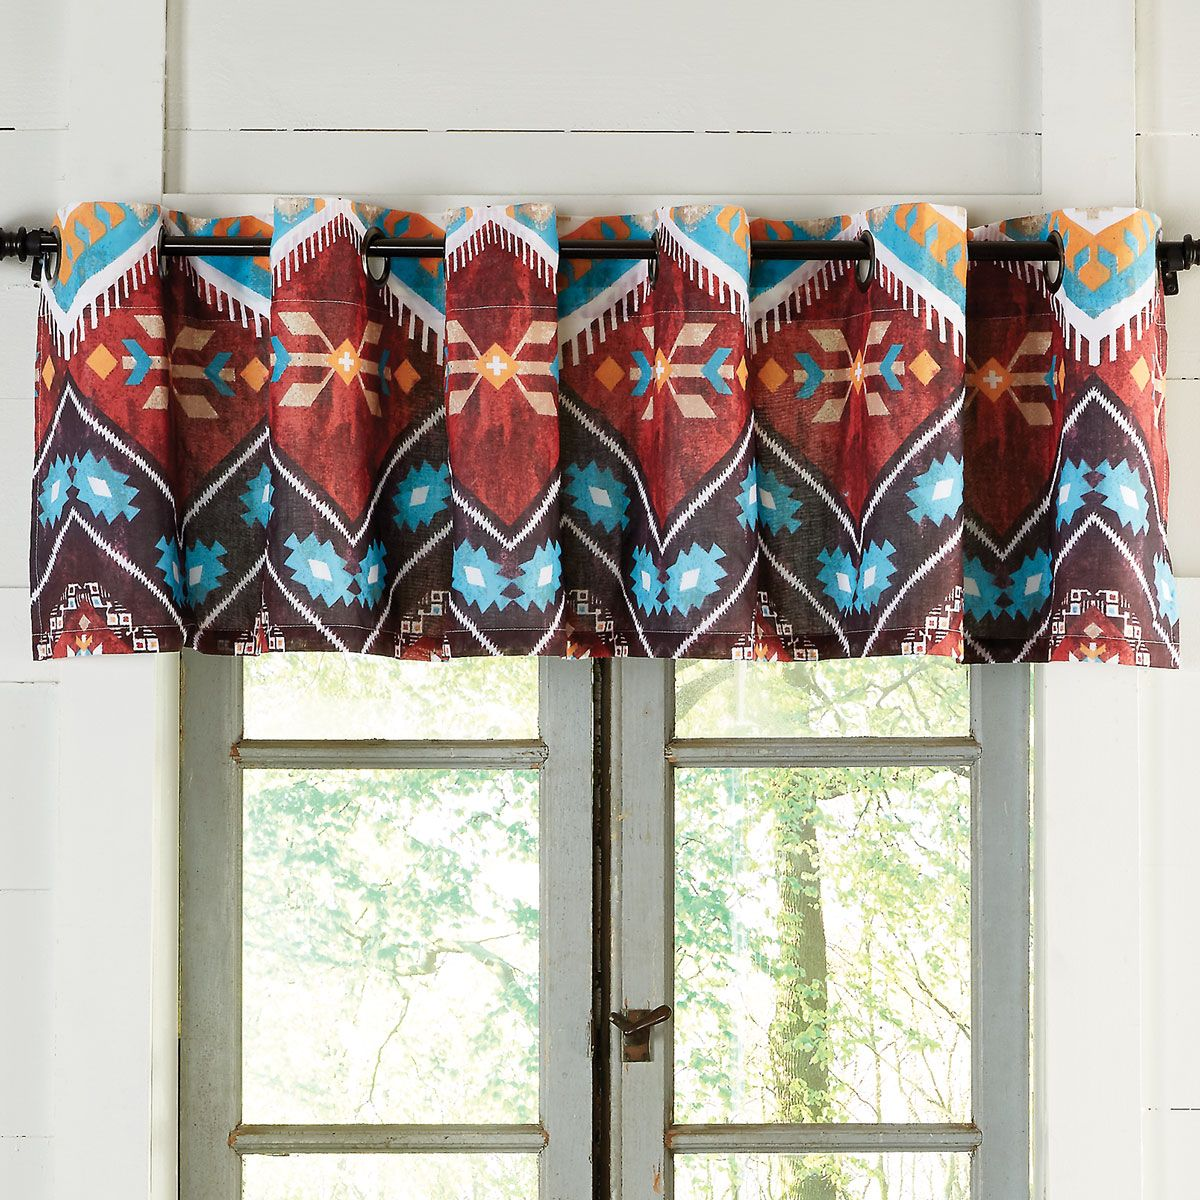 WESTERN WEAR COWBOY BOOTS BATHROOM COLLECTION SHOWER CURTAIN RUG TOWELS VALANCE+